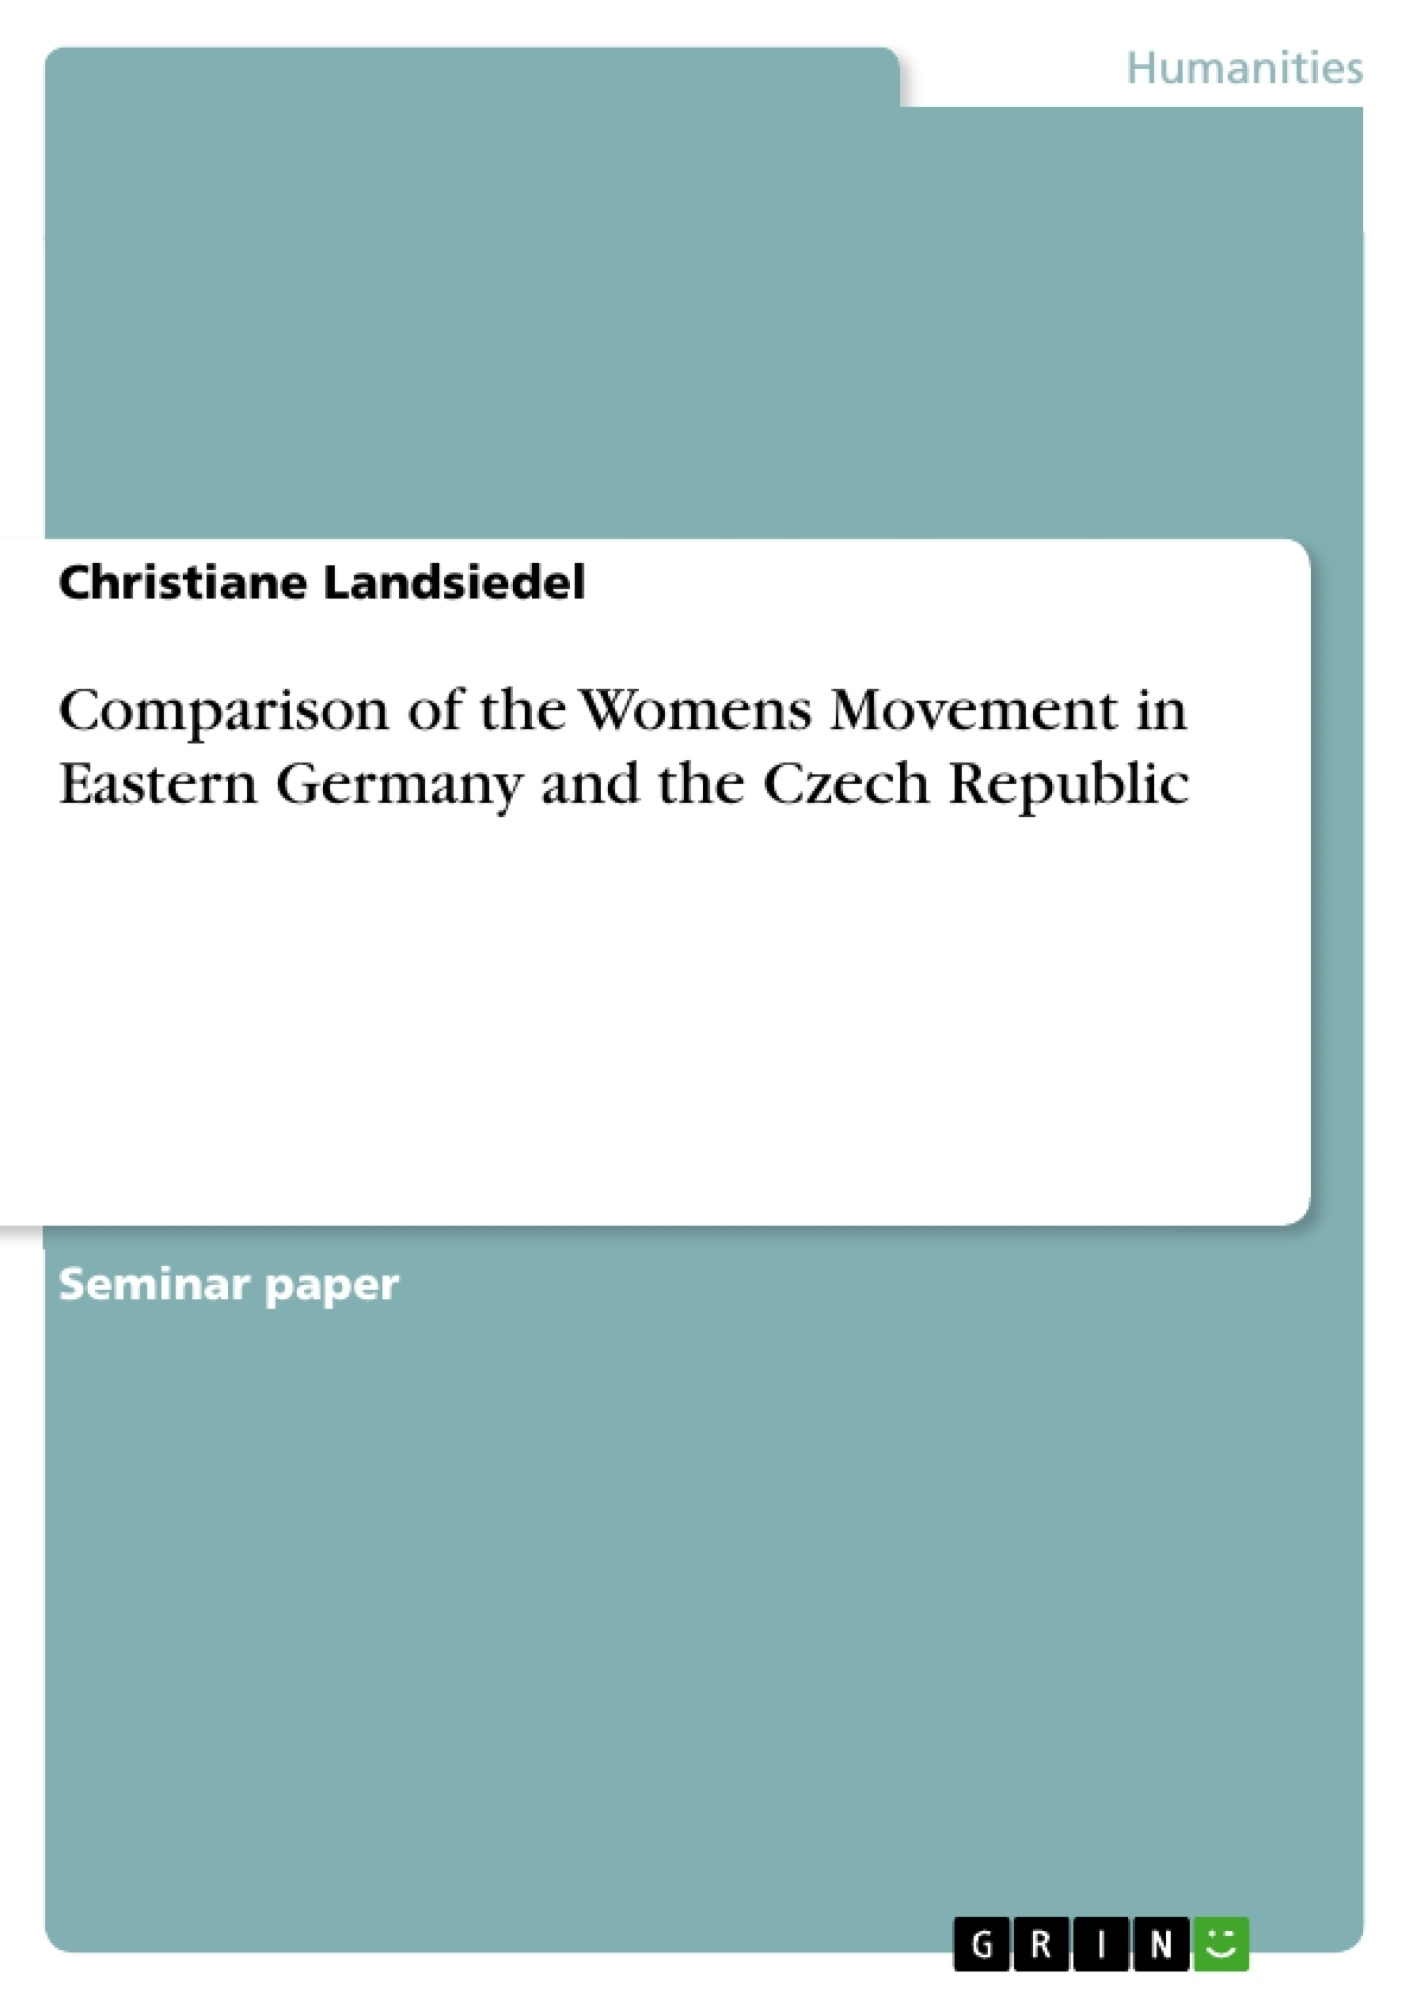 Title: Comparison of the Womens Movement in Eastern Germany and the Czech Republic